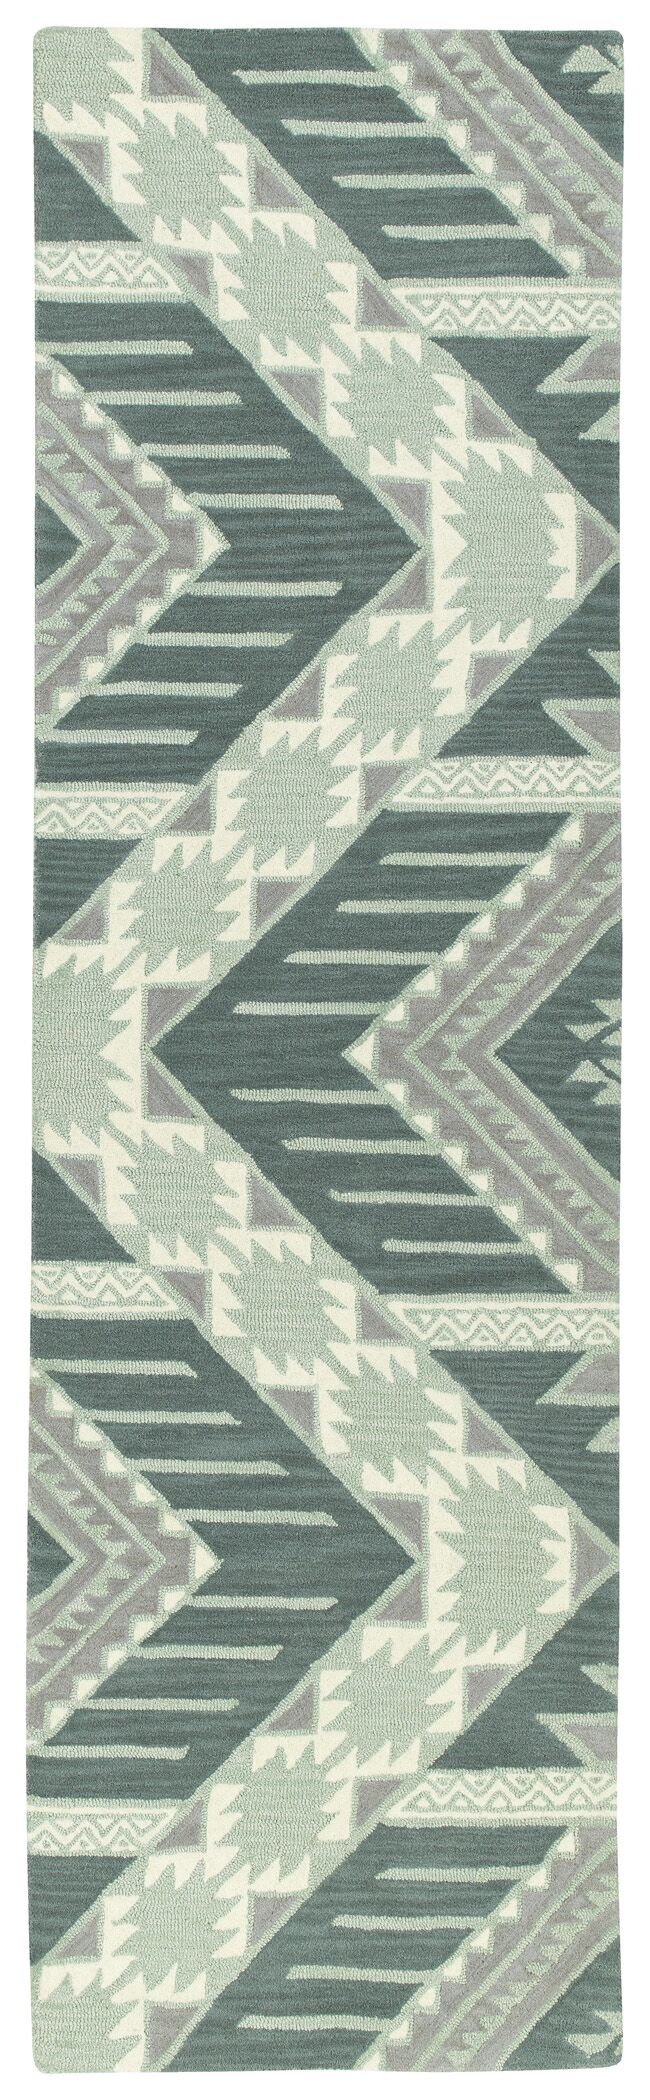 Hinton Charterhouse Hand-Tufted Mint Area Rug Rug Size: Rectangle 9' x 12'